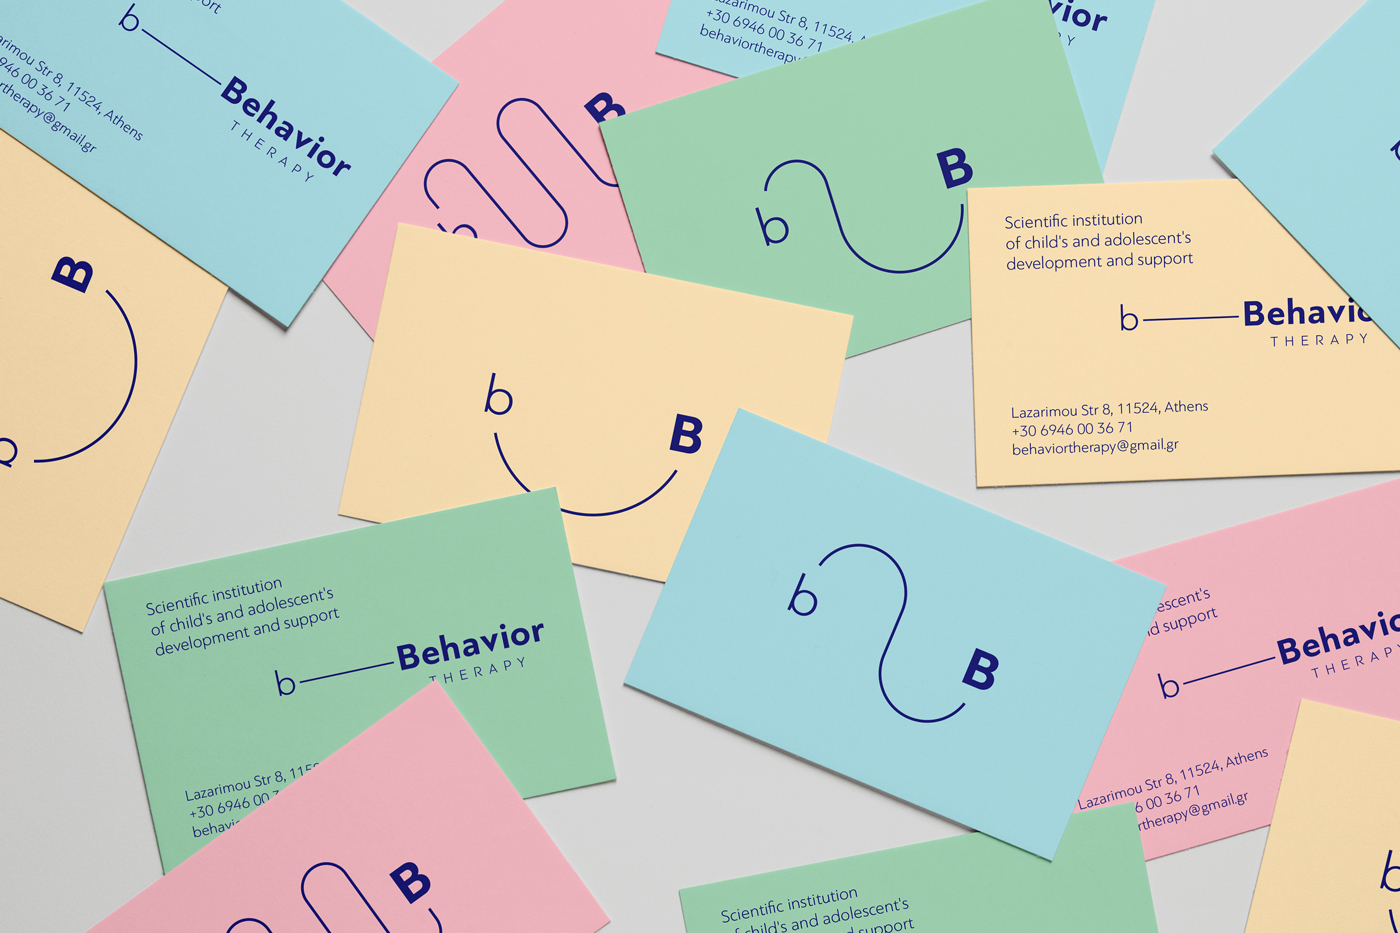 Branding for Behavior Therapy a Scientific Institution for Child's Development and Support